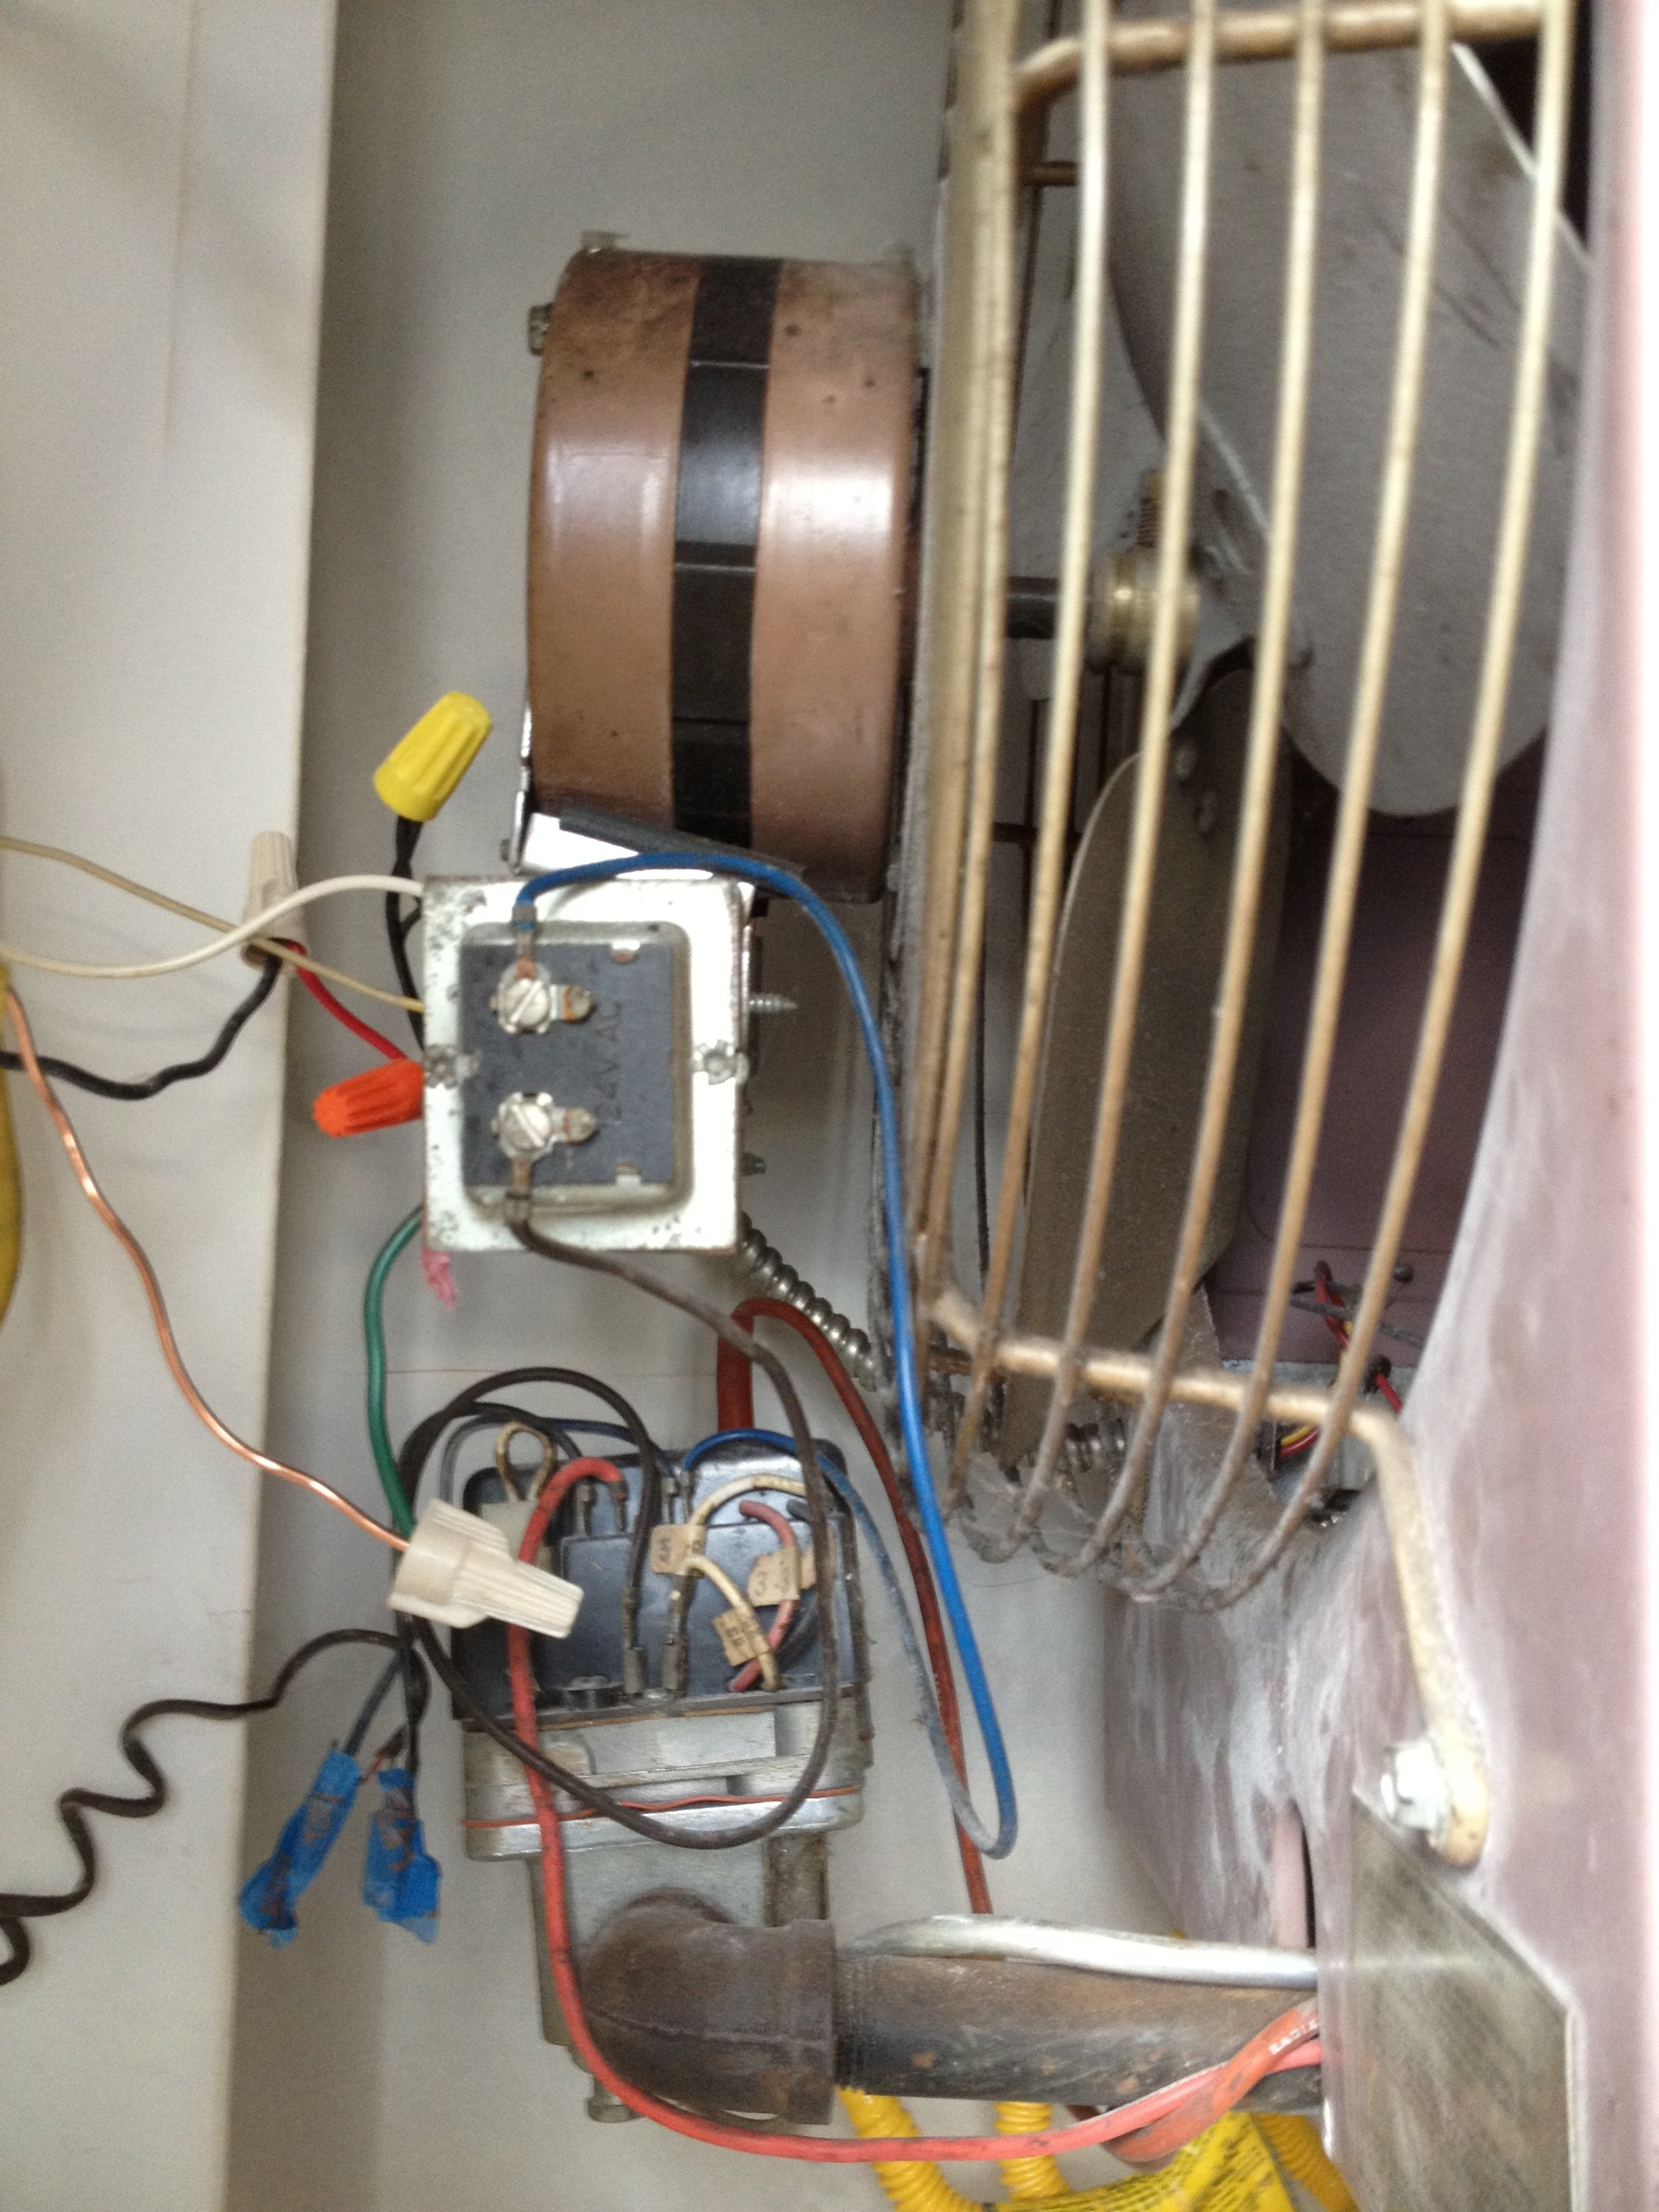 I Have A Reznor Heater From A Friend That I U0026 39 M Installing For The First Time In My Garage  I Have